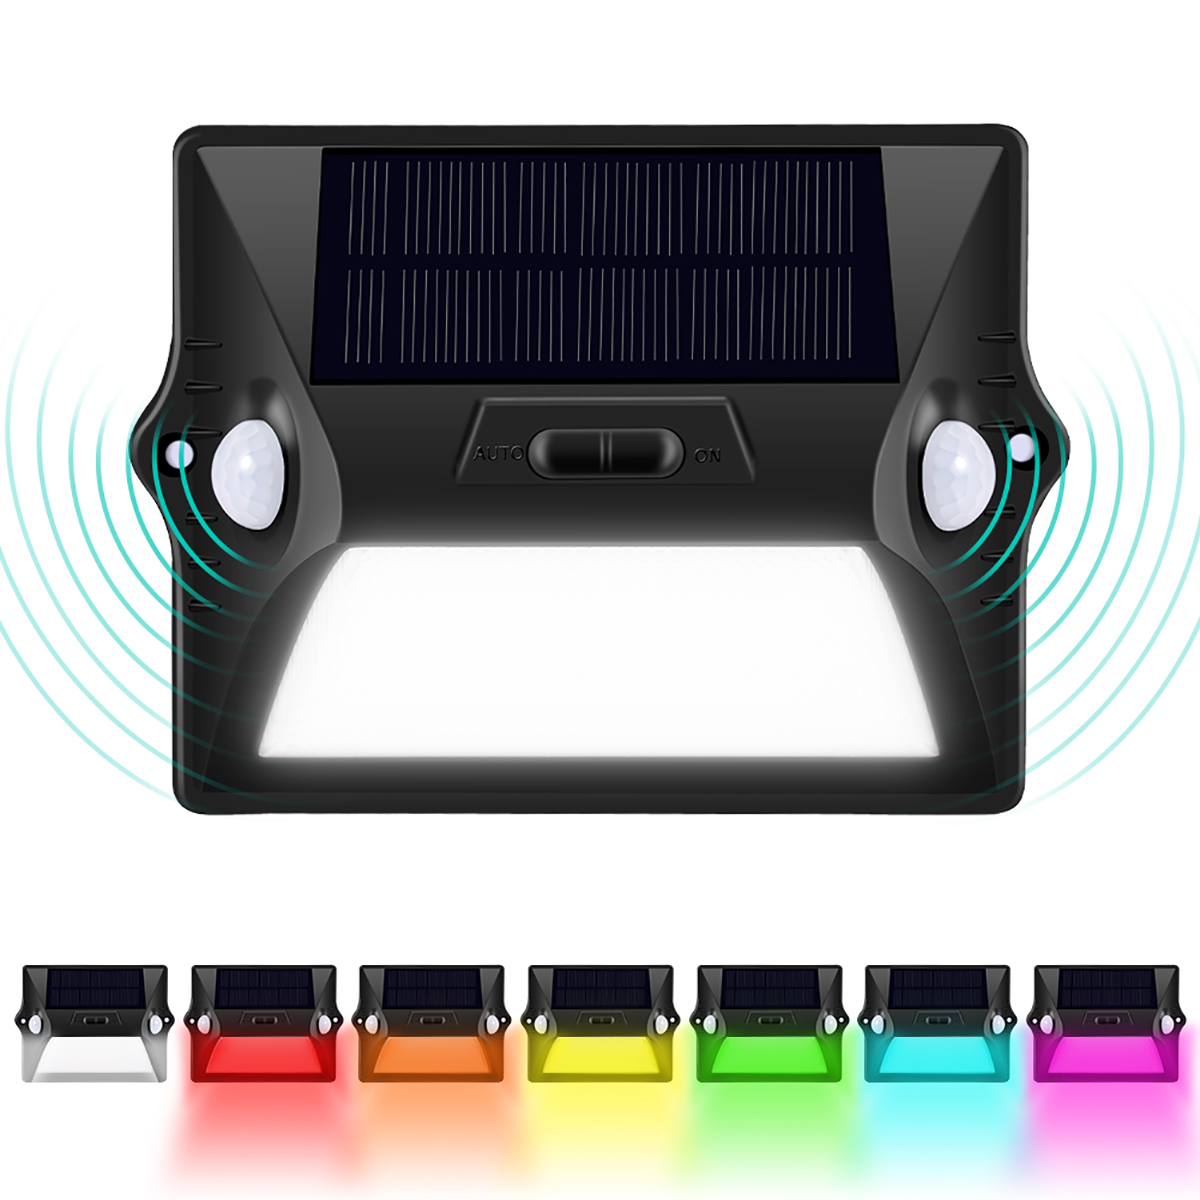 Outside Solar Lights Outdoor Solar Lights 12 Led Solar Powered Security Lights With Motion Sensor Wall Lights Outside For Garden Driveway Patio Yard Deck Pathway